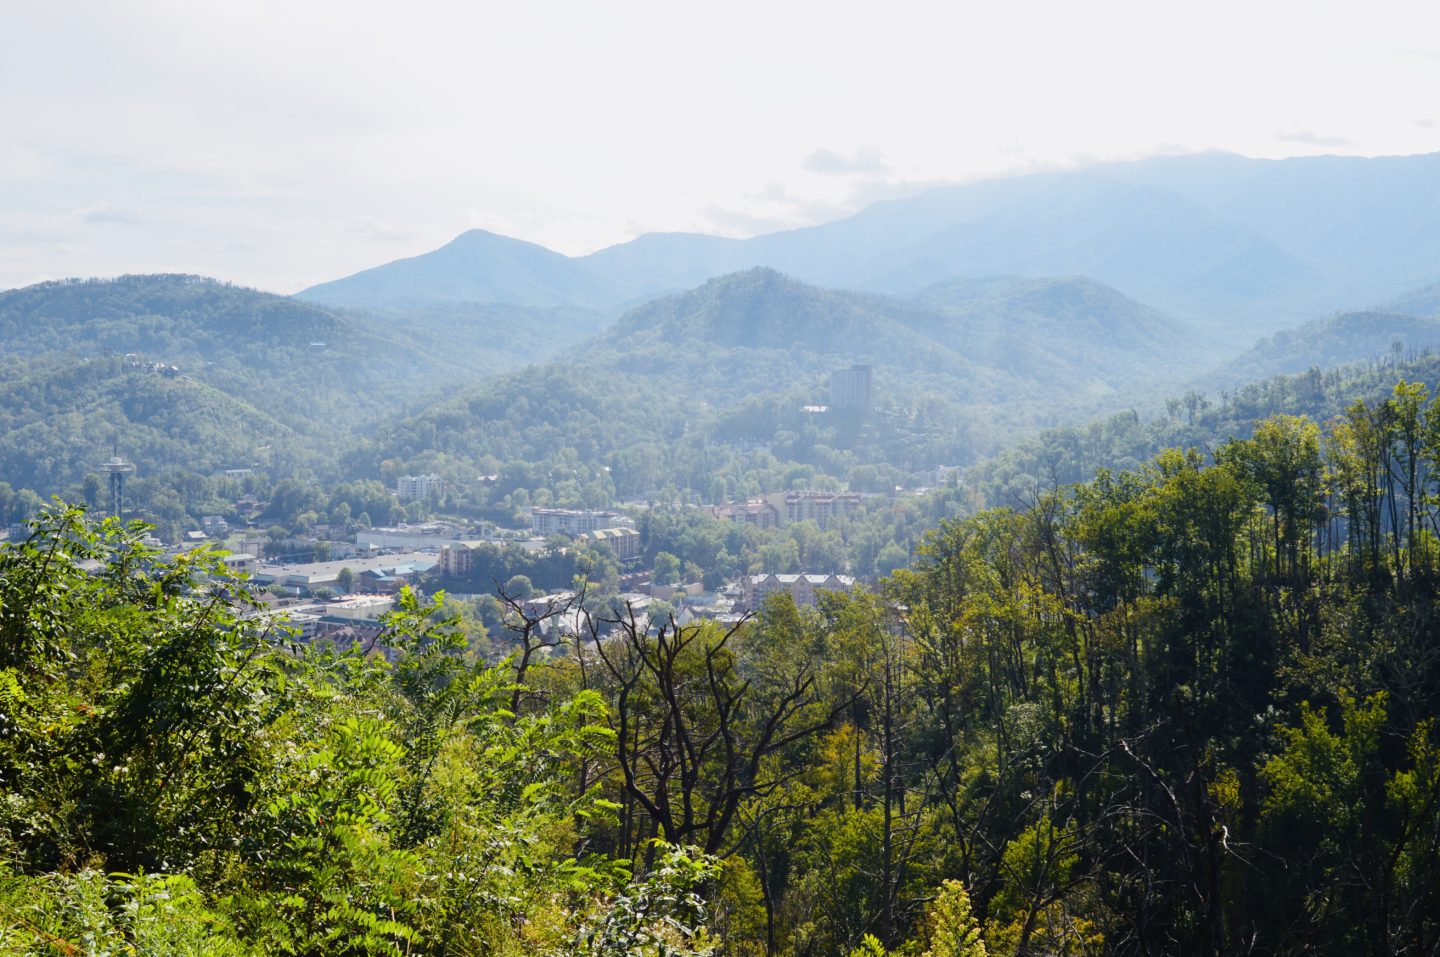 Views overlooking the town of Gatlinburg in the Smokey Mountains